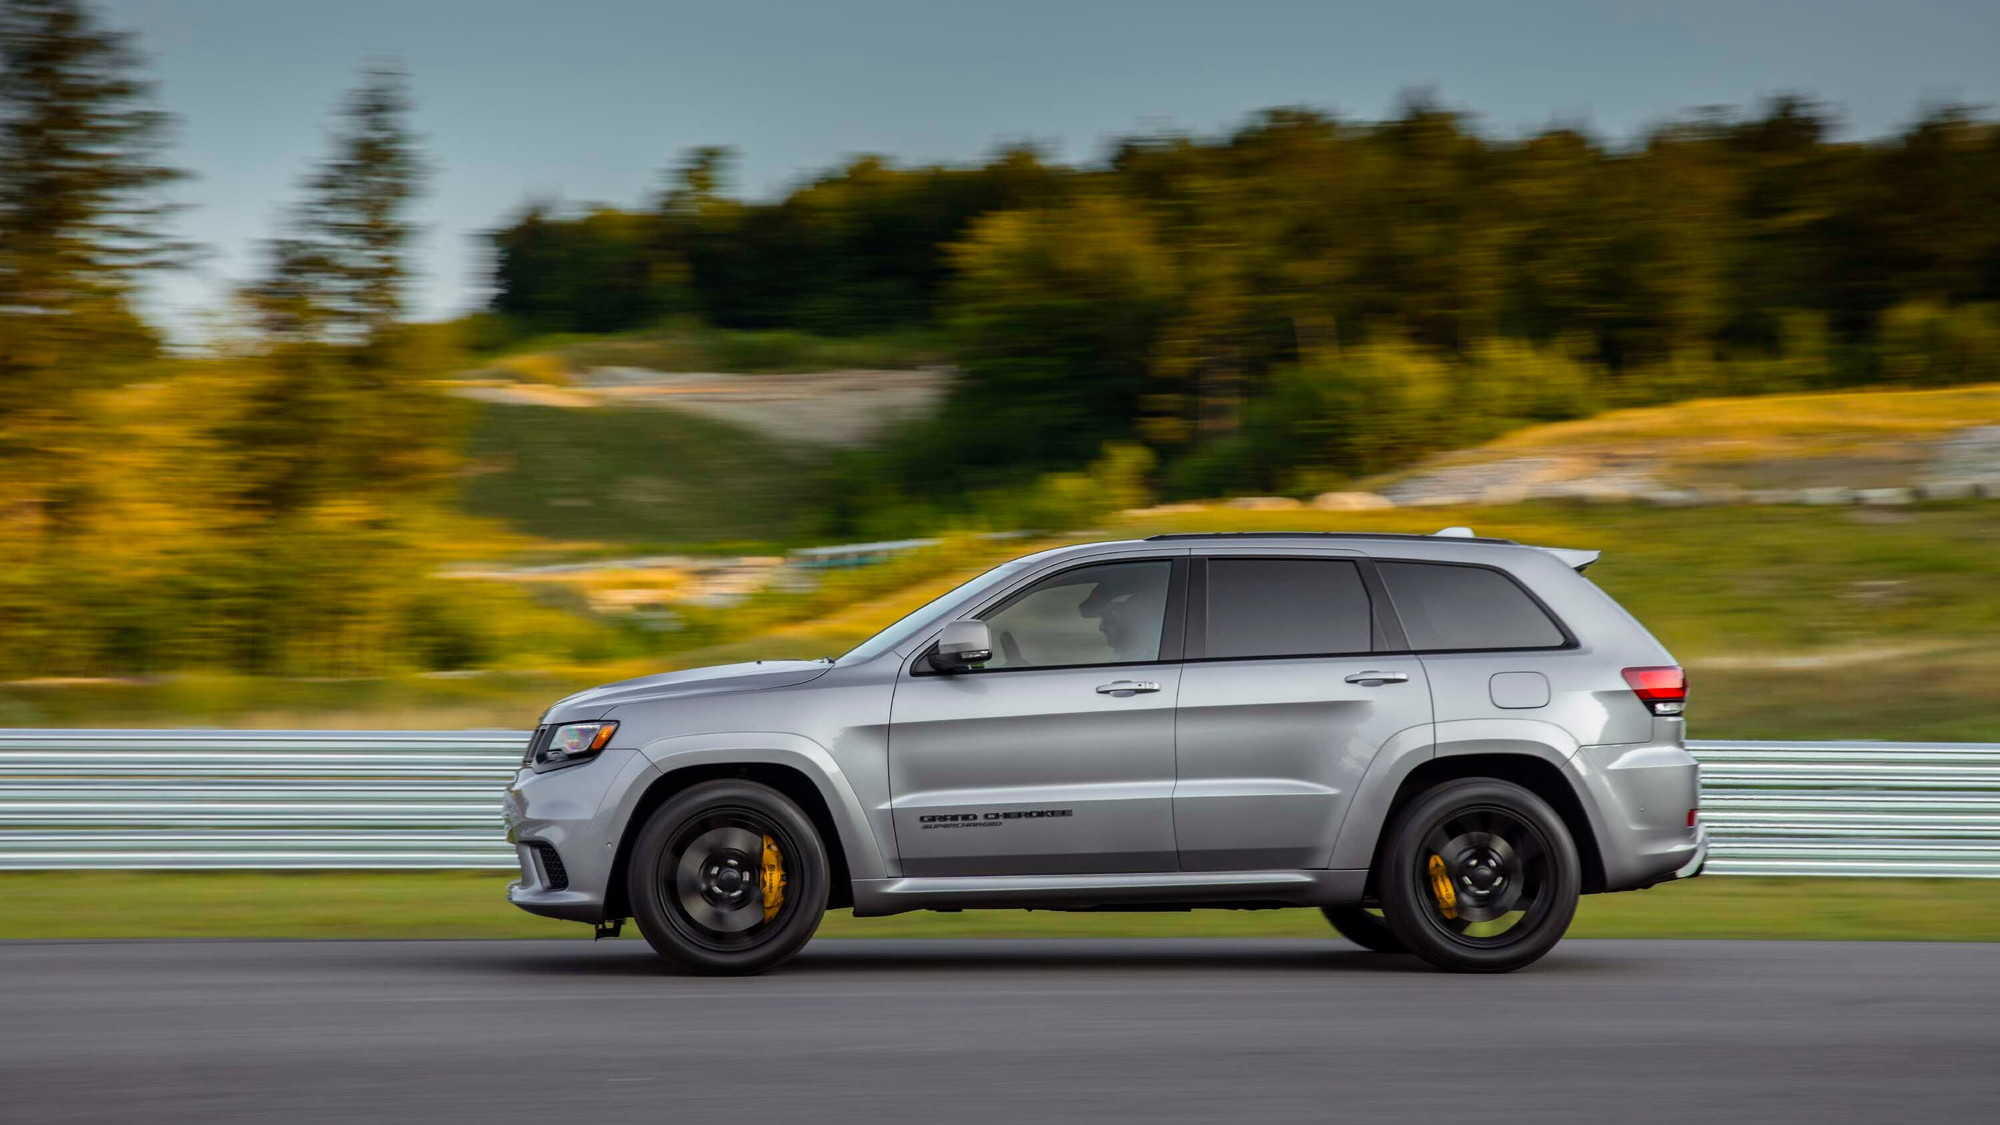 2020 Jeep Grand Cherokee USA Release Date, Spy Photos, Redesign >> 2020 Jeep Grand Cherokee Preview